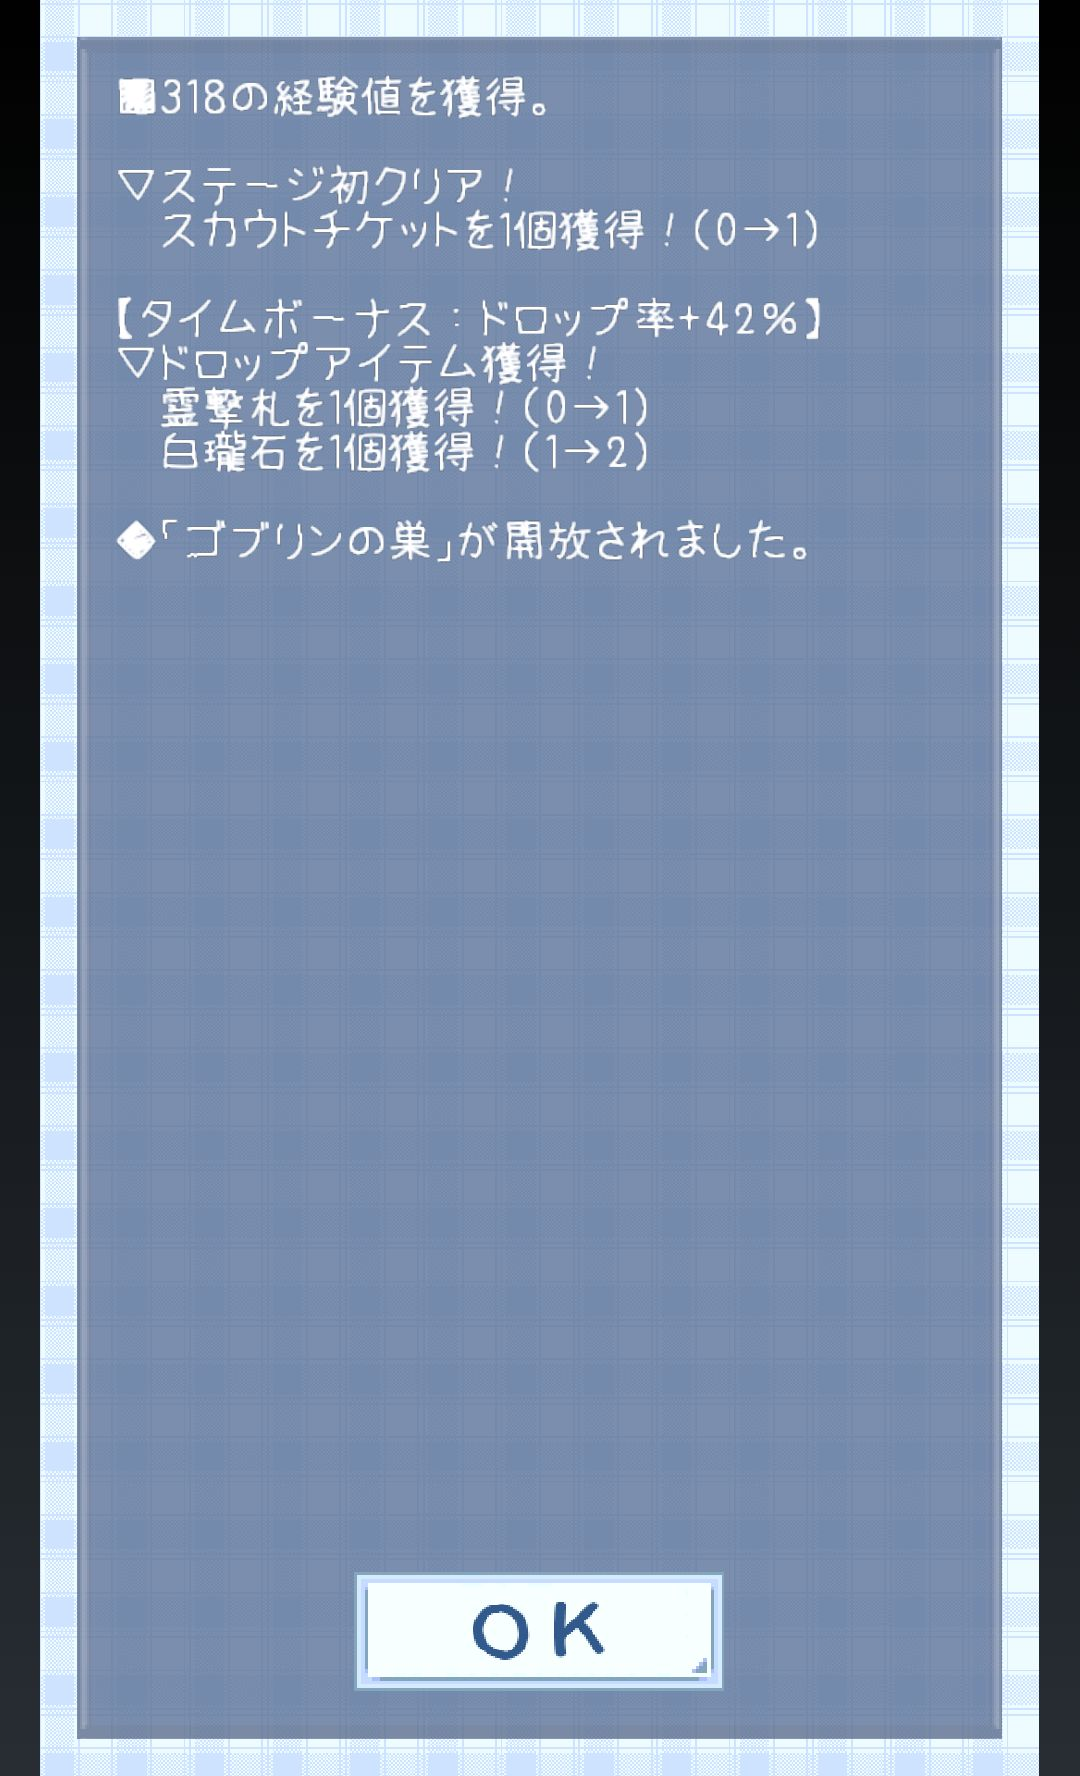 androidアプリ 東方異想穴攻略スクリーンショット3